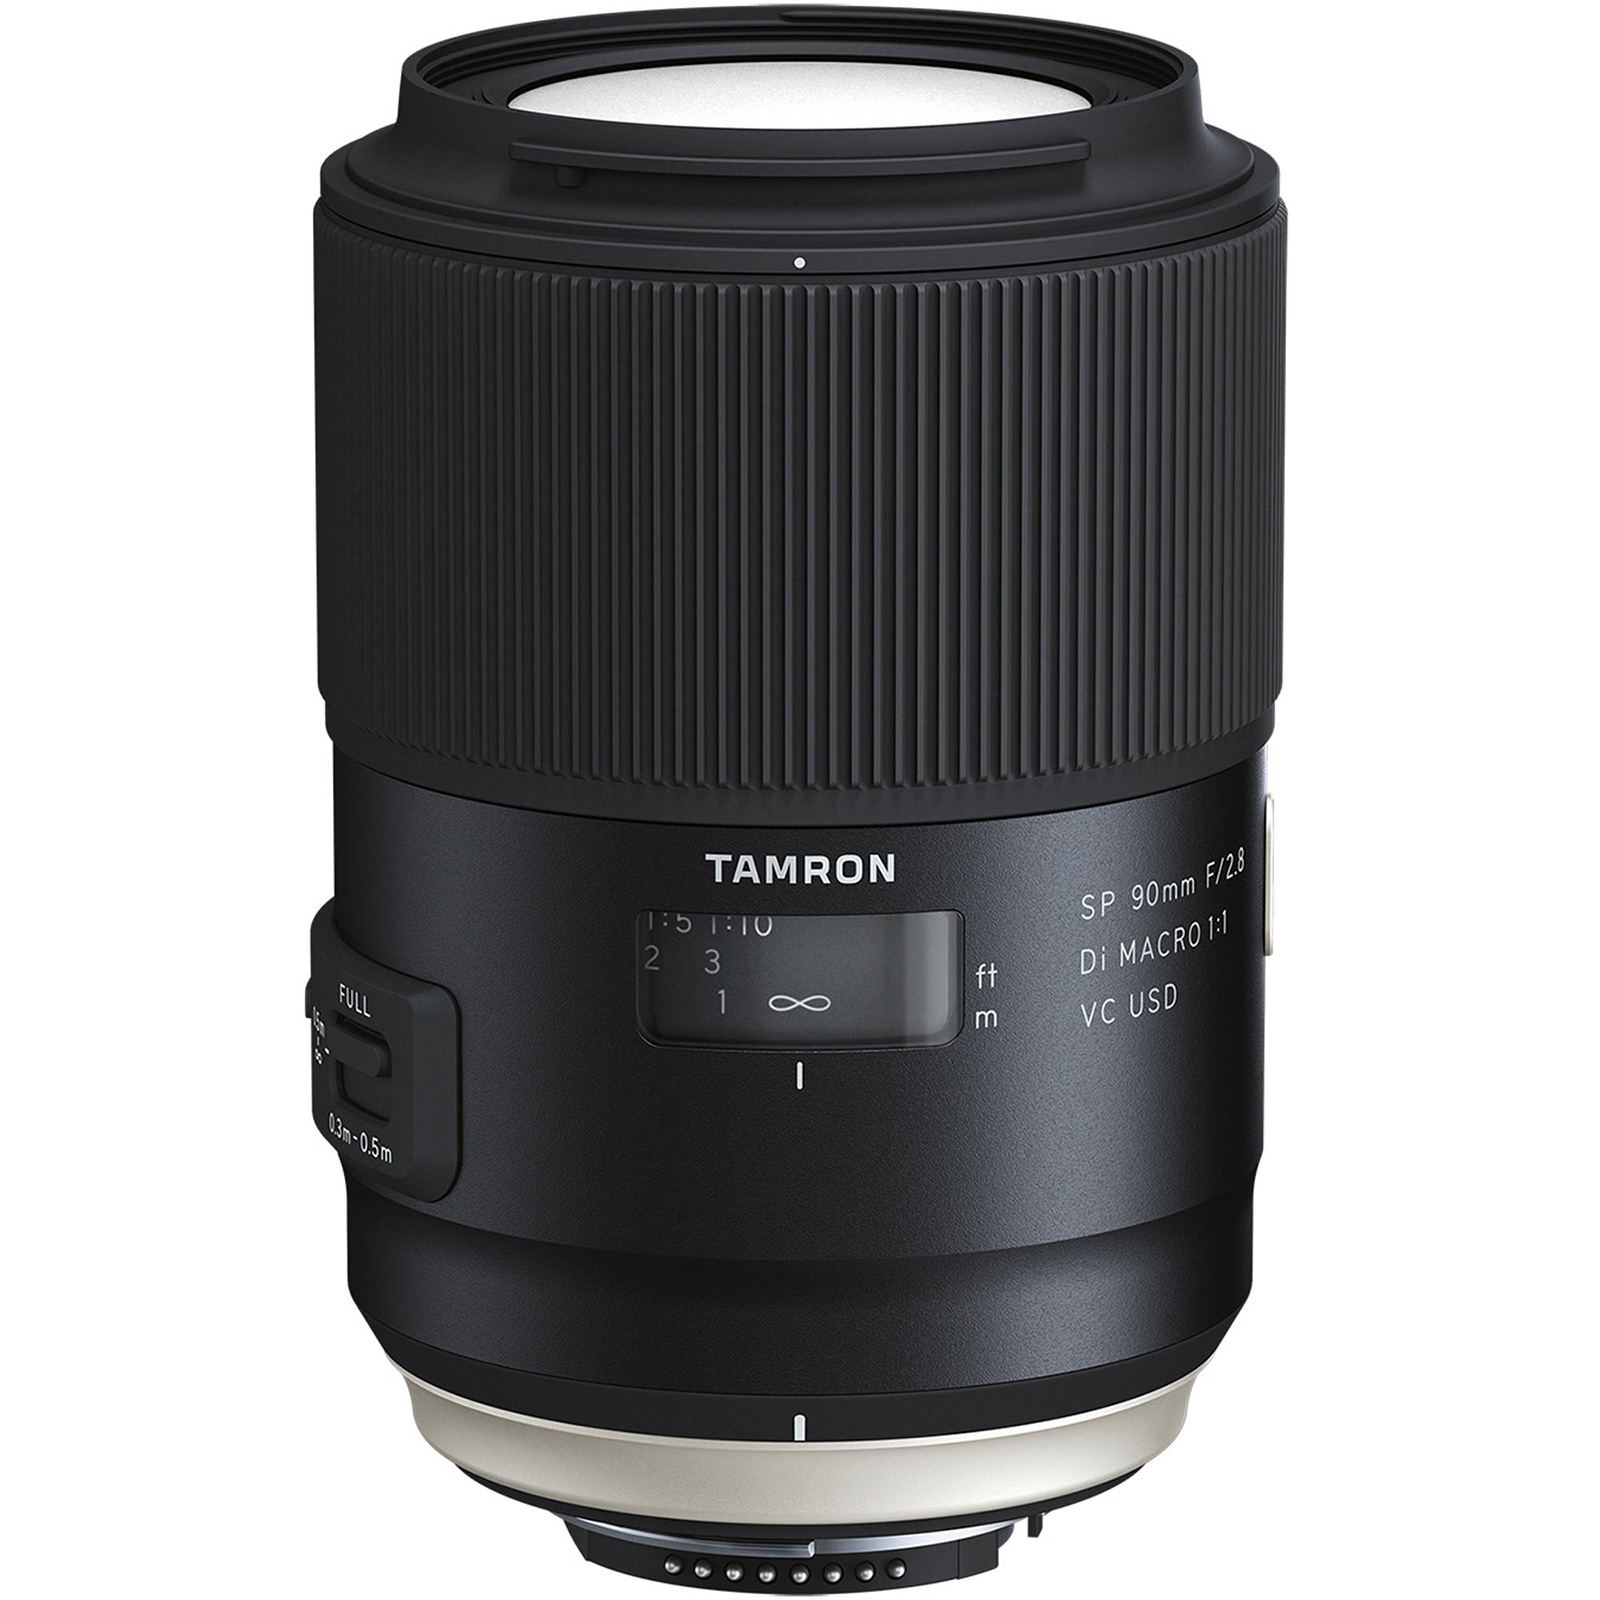 Tamron SP 90mm f/2.8 Di VC USD Macro 1:1 Lens (for Nikon Cameras)